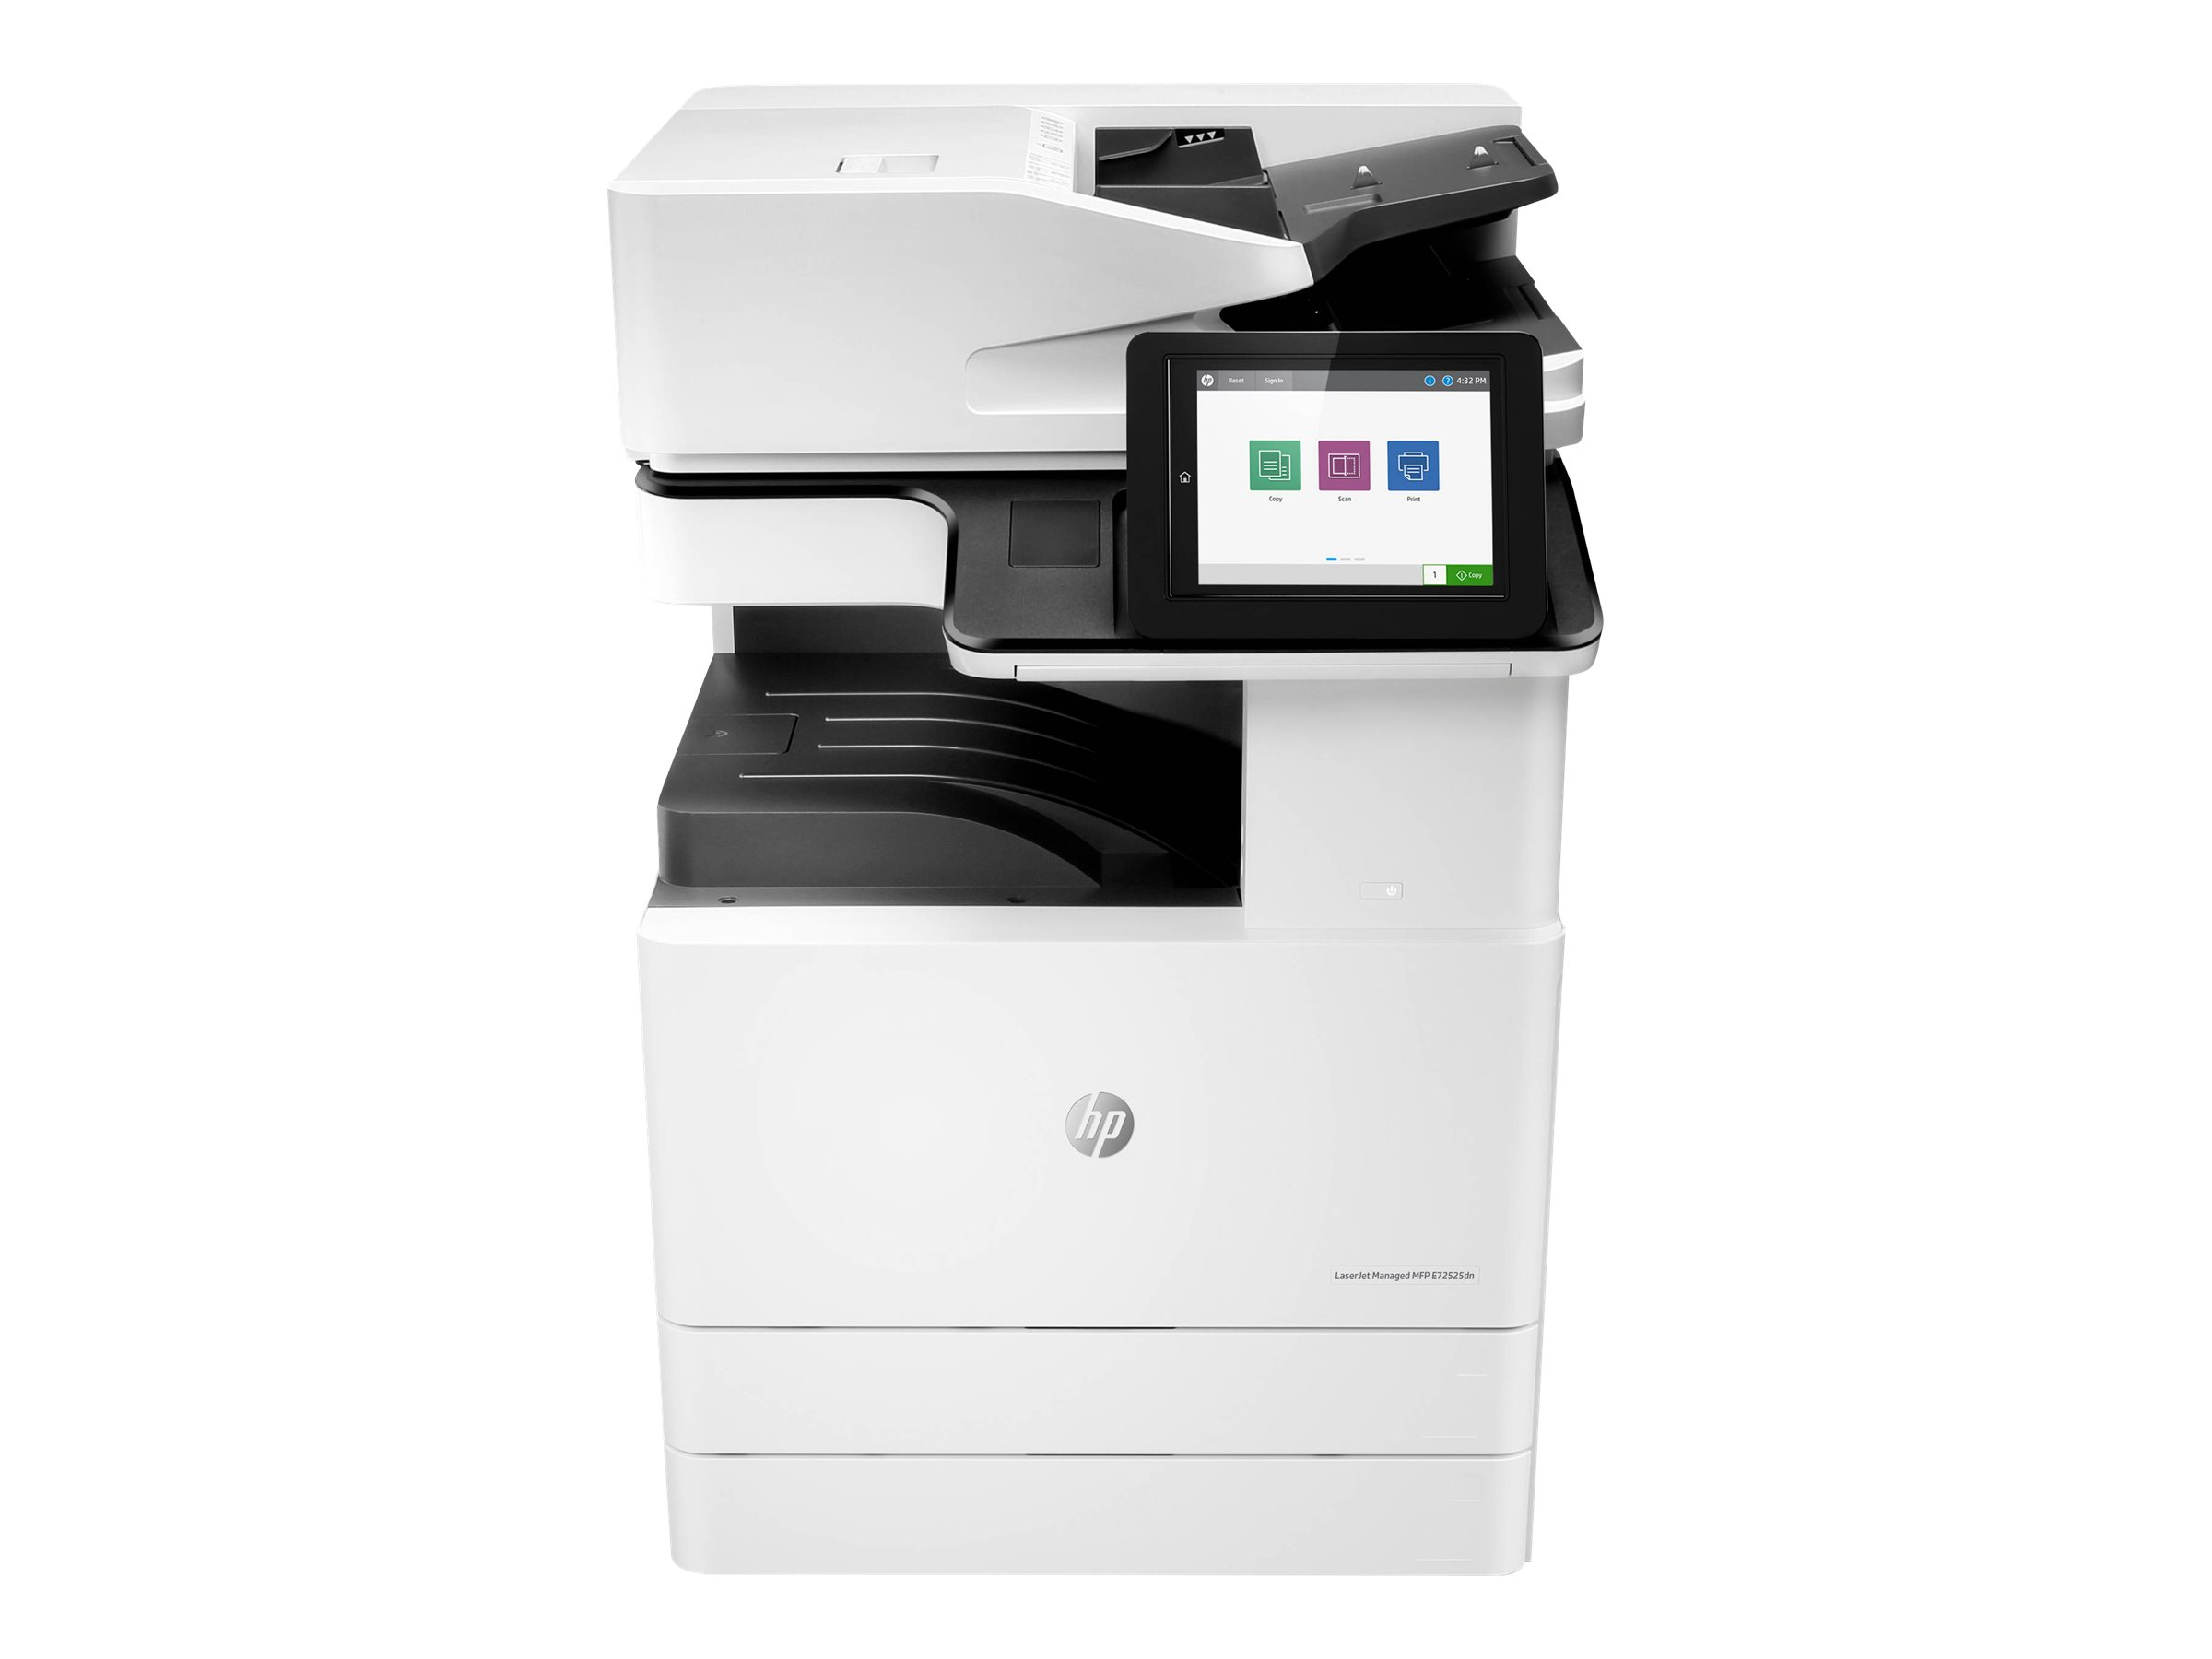 Copieur LaserJet Managed Flow MFP HP E72525z - vitesse 25ppm vue avant